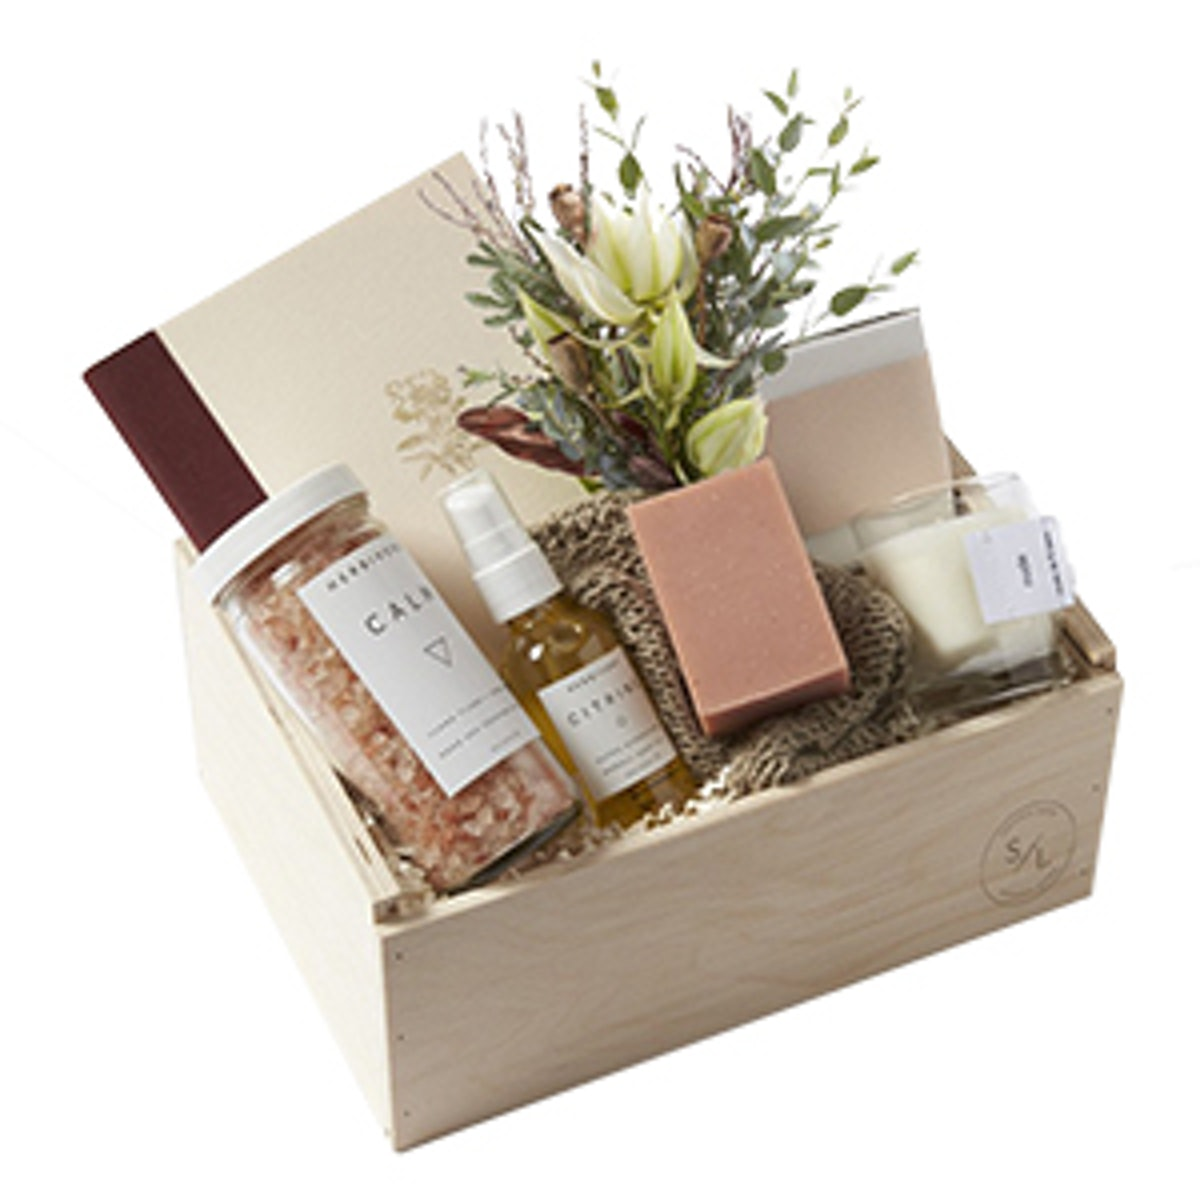 Staycation Relaxation Gift Box